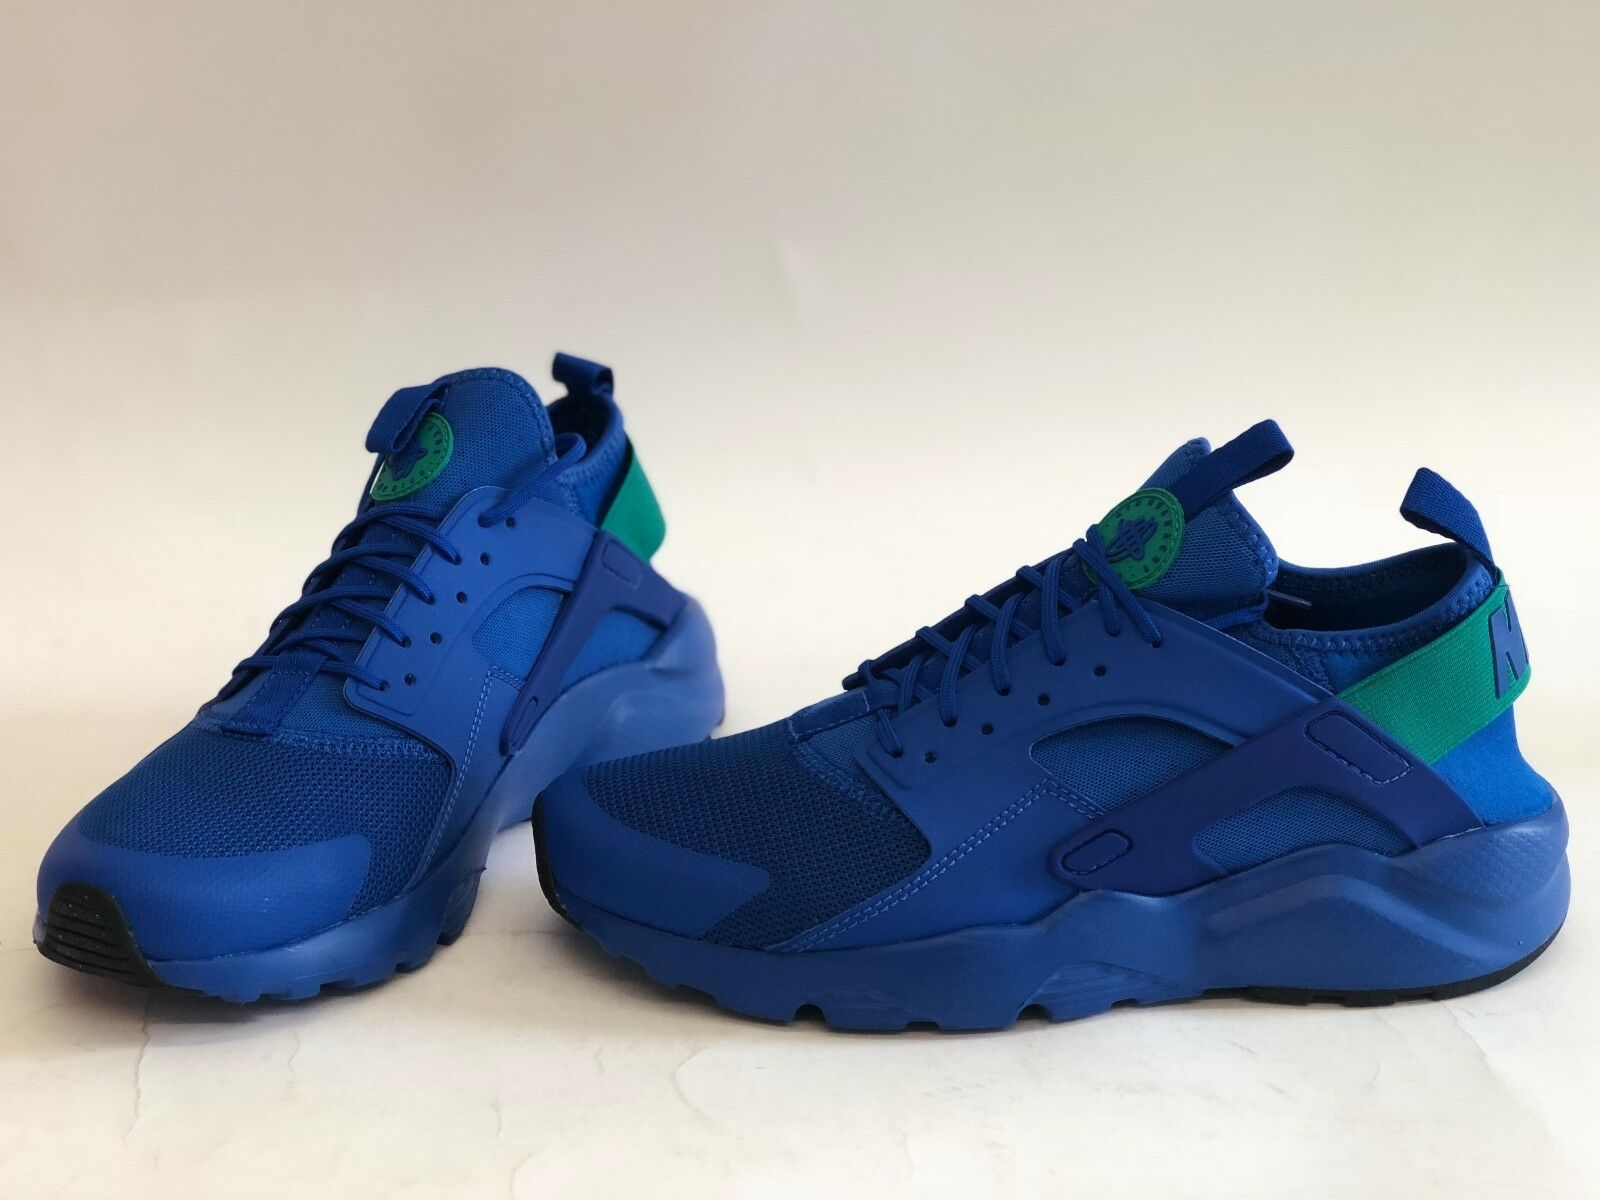 NIB MENS SIZE 8.5 NIKE AIR HUARACHE RUNNING ULTRA SNEAKERS ROYAL BLUE 819685-413